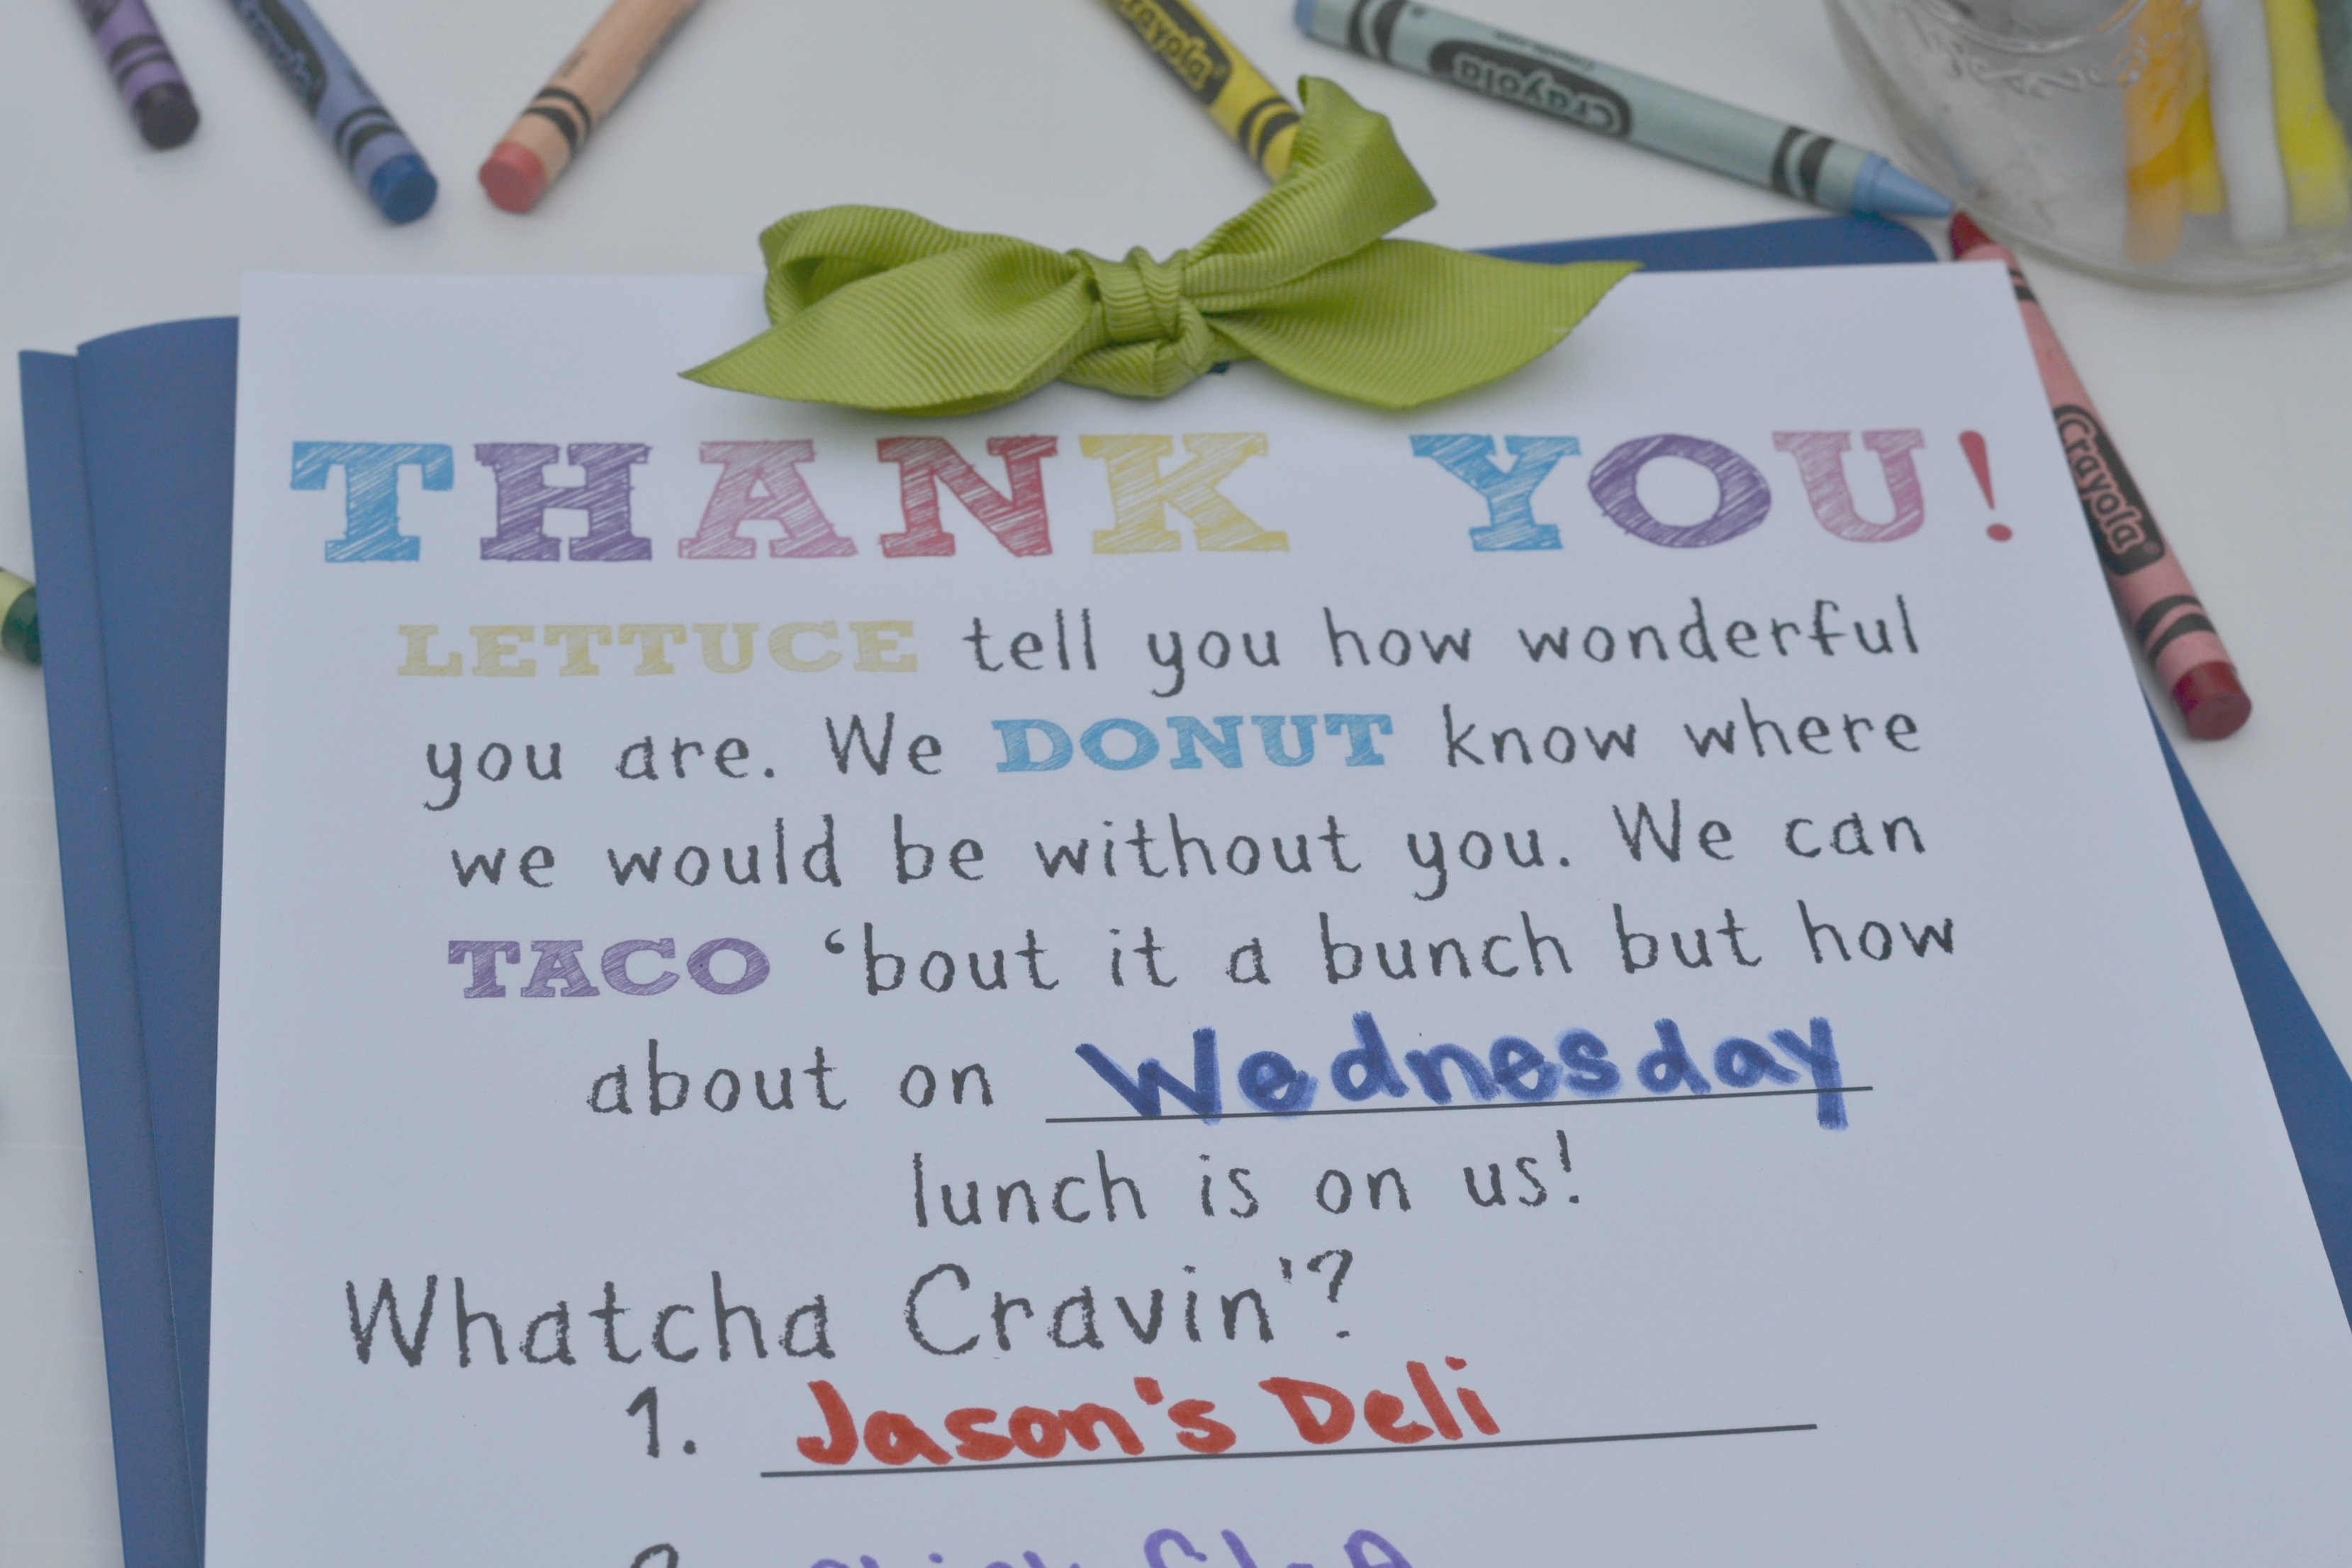 Teacher Gift Lunch Certificate. This teacher gift is perfect for Back to school teacher gifts, End of school teacher gifts or any other occasion. Buy your teacher lunch! Teacher Appreciation Gift.